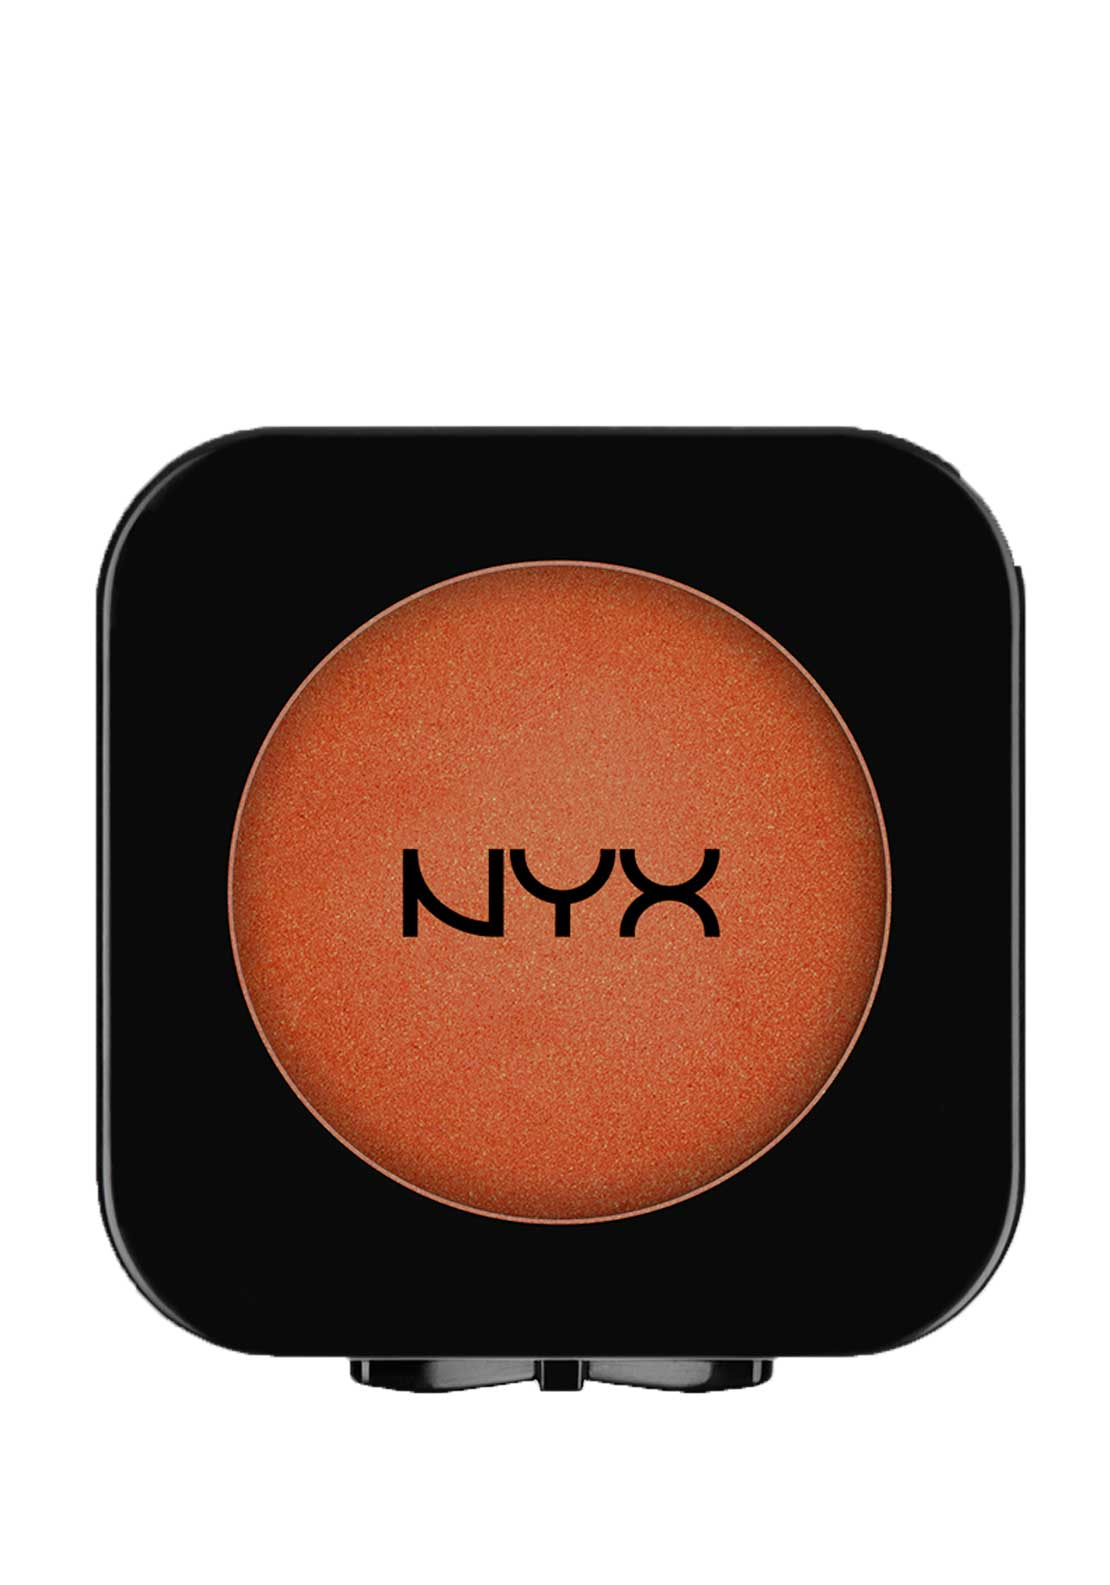 NYX Make Up HD Blusher, Intuition, 21